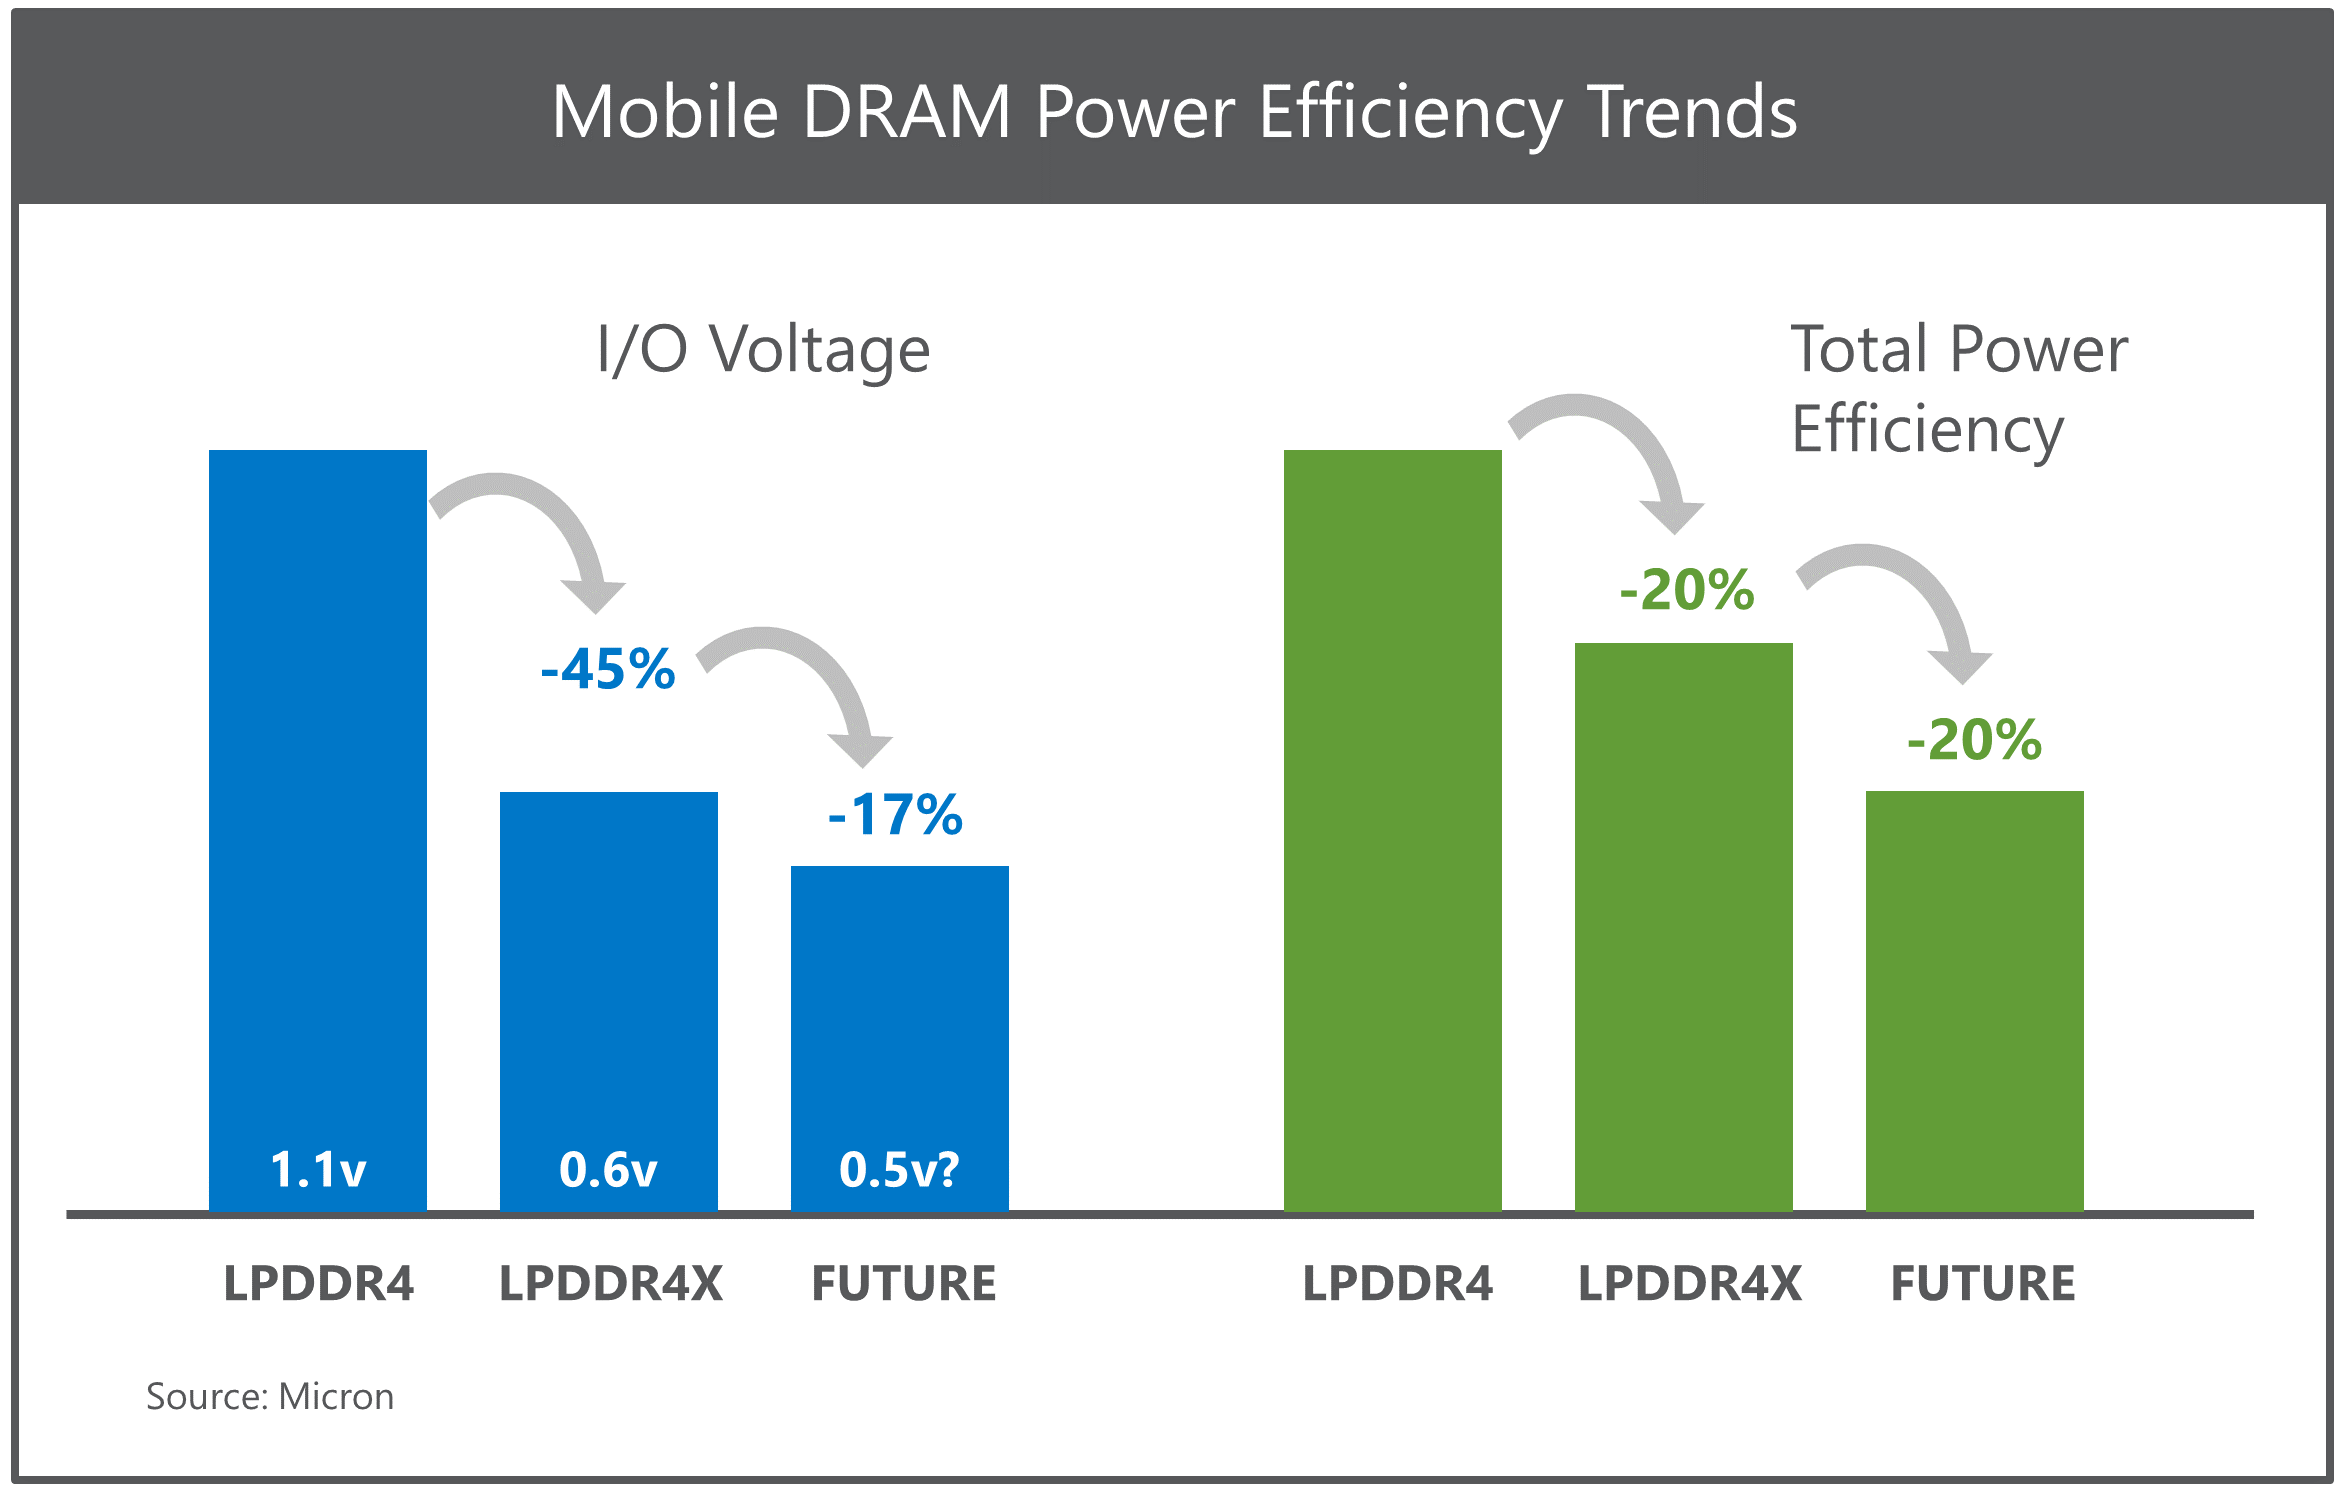 Mobile DRAM Power Efficiency Trends